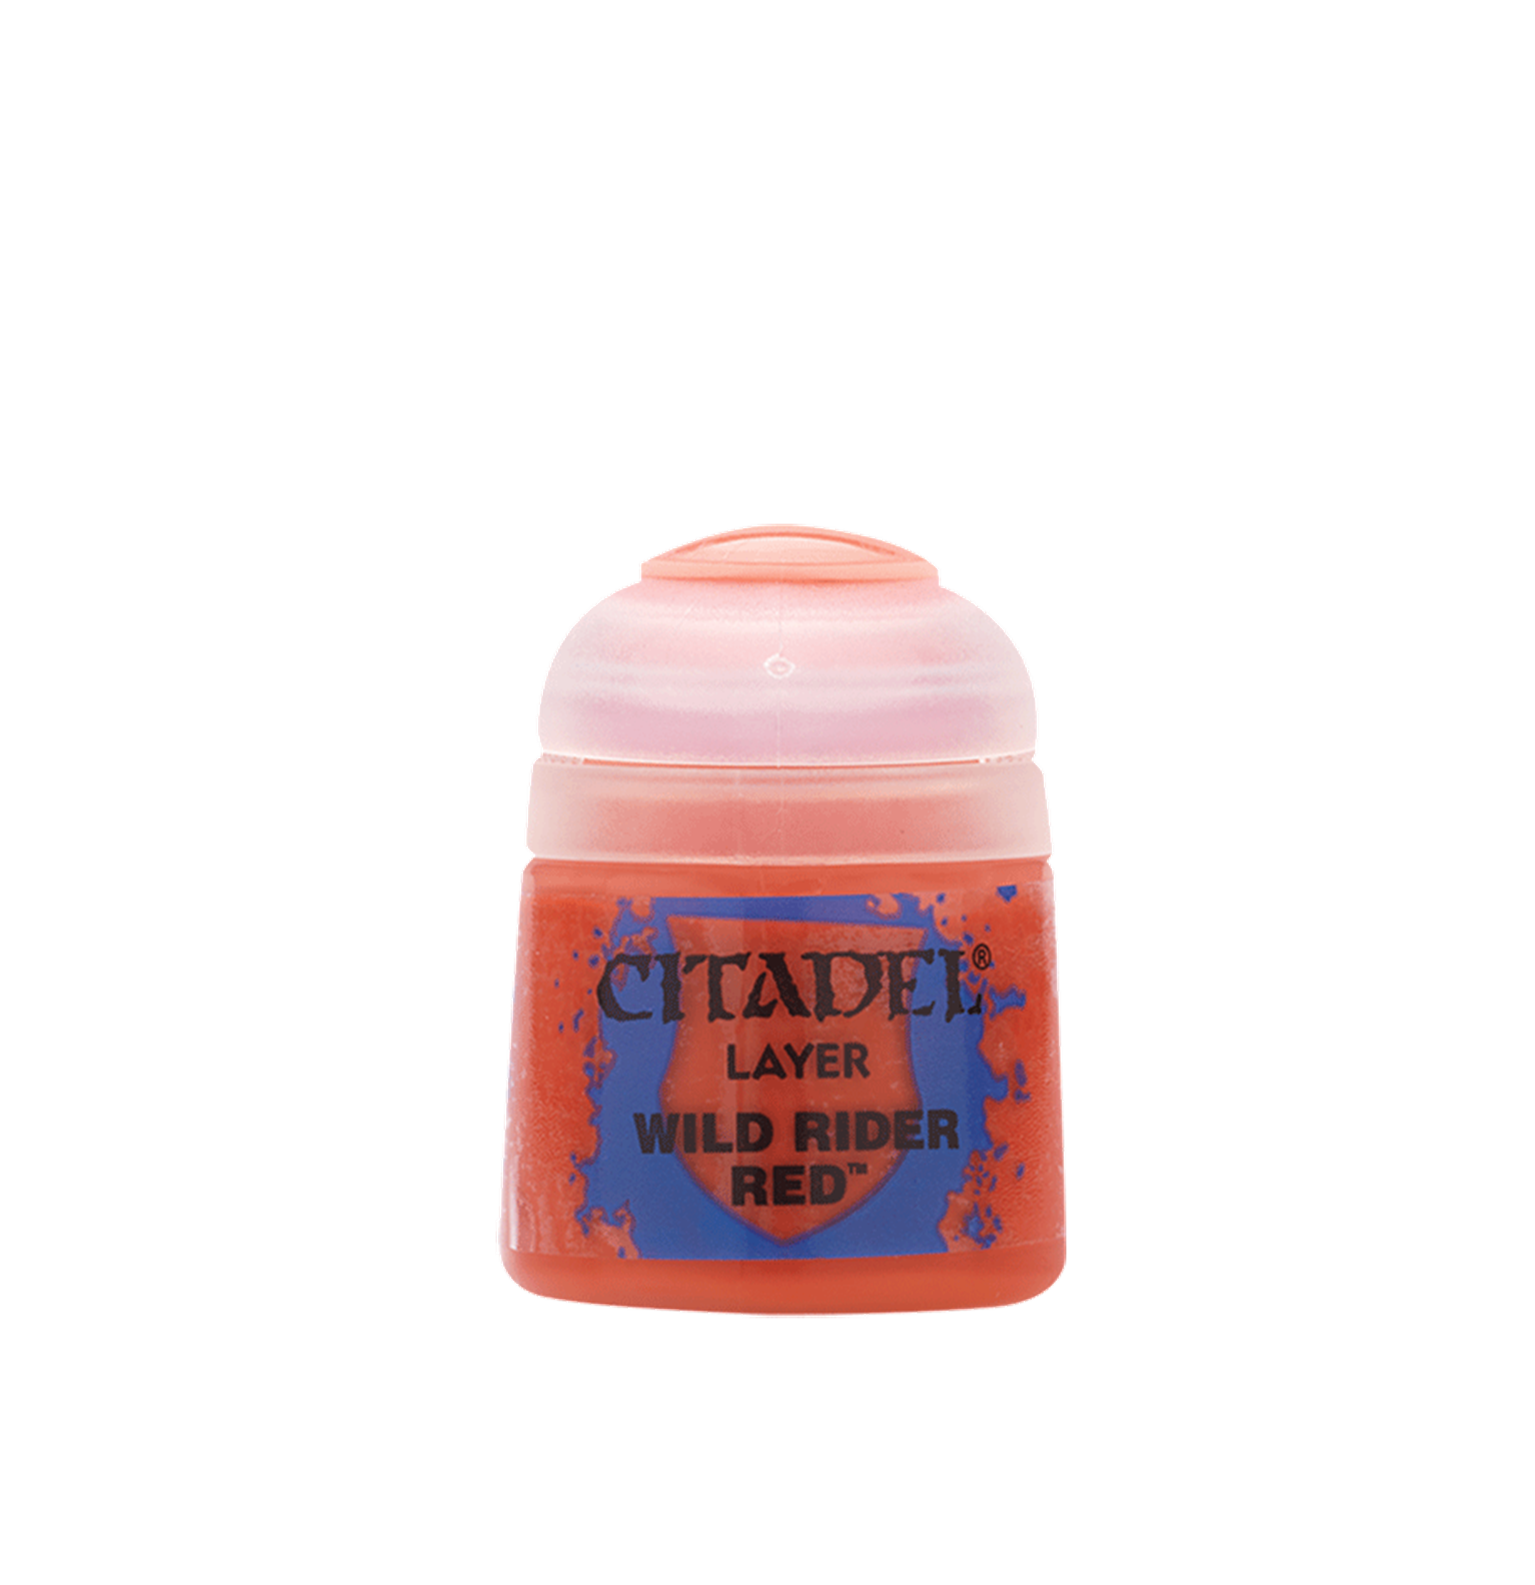 CITADEL LAYER Wild Rider Red PAINT POT